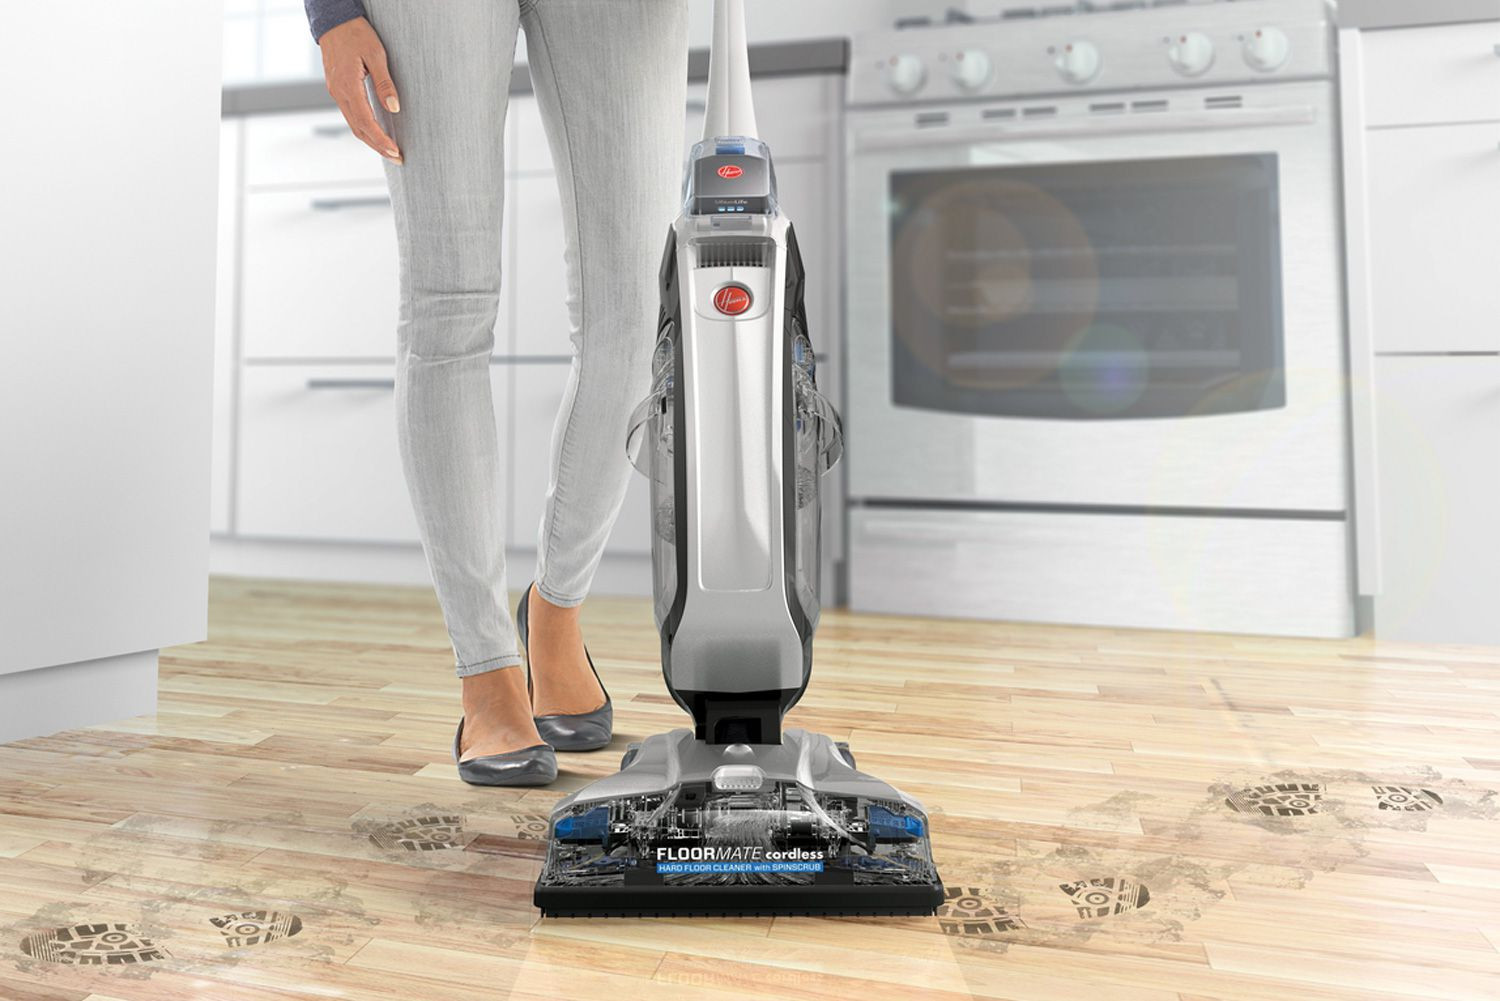 hardwood floor cleaning machine reviews of hoover floormate cleaner review with hoover floormate 59a452af685fbe00102f4ce0